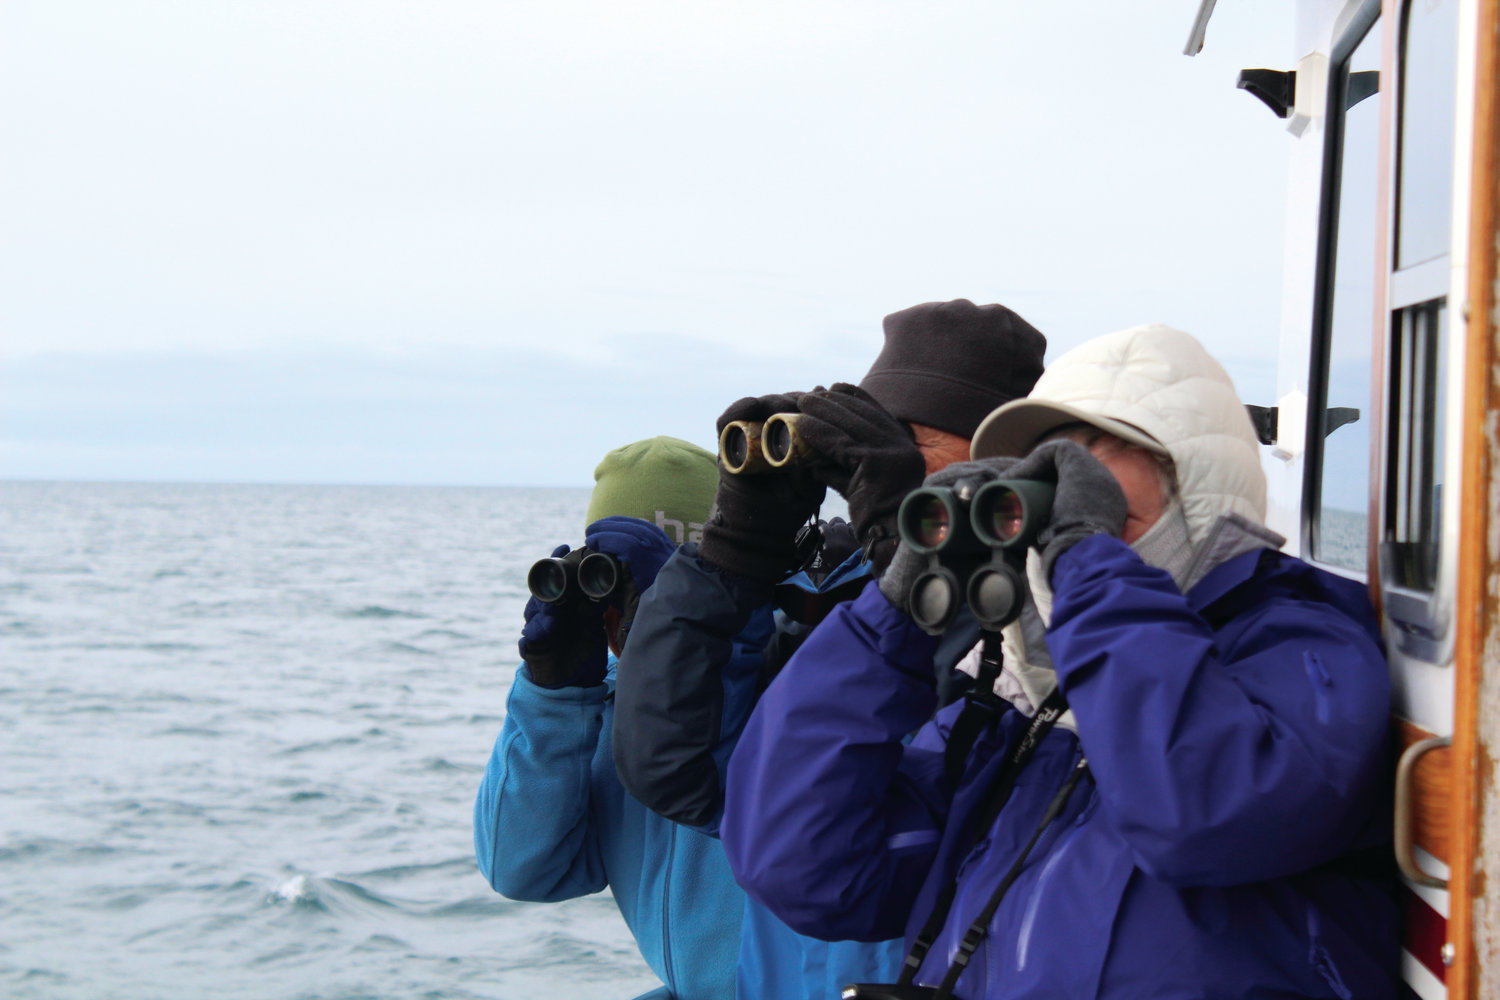 Participants Judith White, Cynthia Zenner and Gary Bullock, all from Sequim, search the sea for a sighting of their favorite birds while on the fall Protection Island cruise in Nov. 2018.